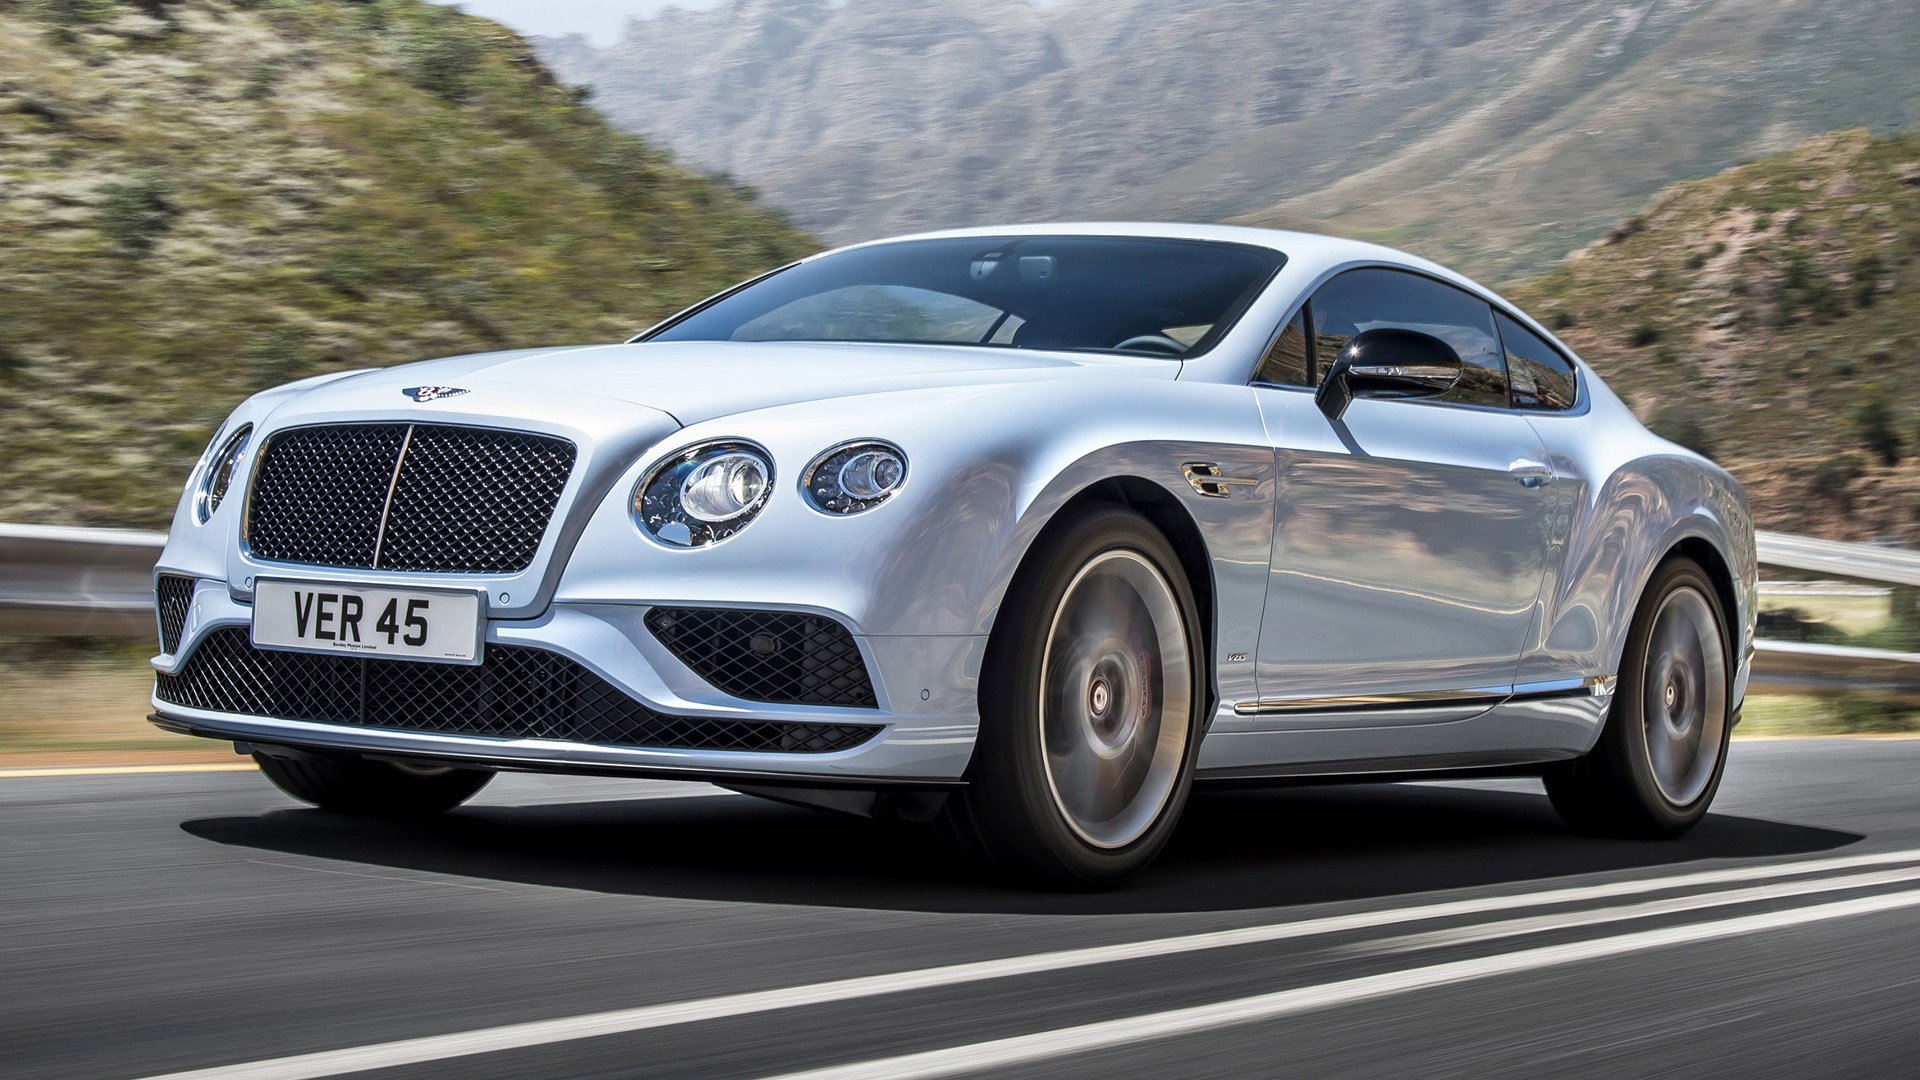 Latest 2015 Bentley Continental Gt V8 S Wallpapers And Hd Free Download